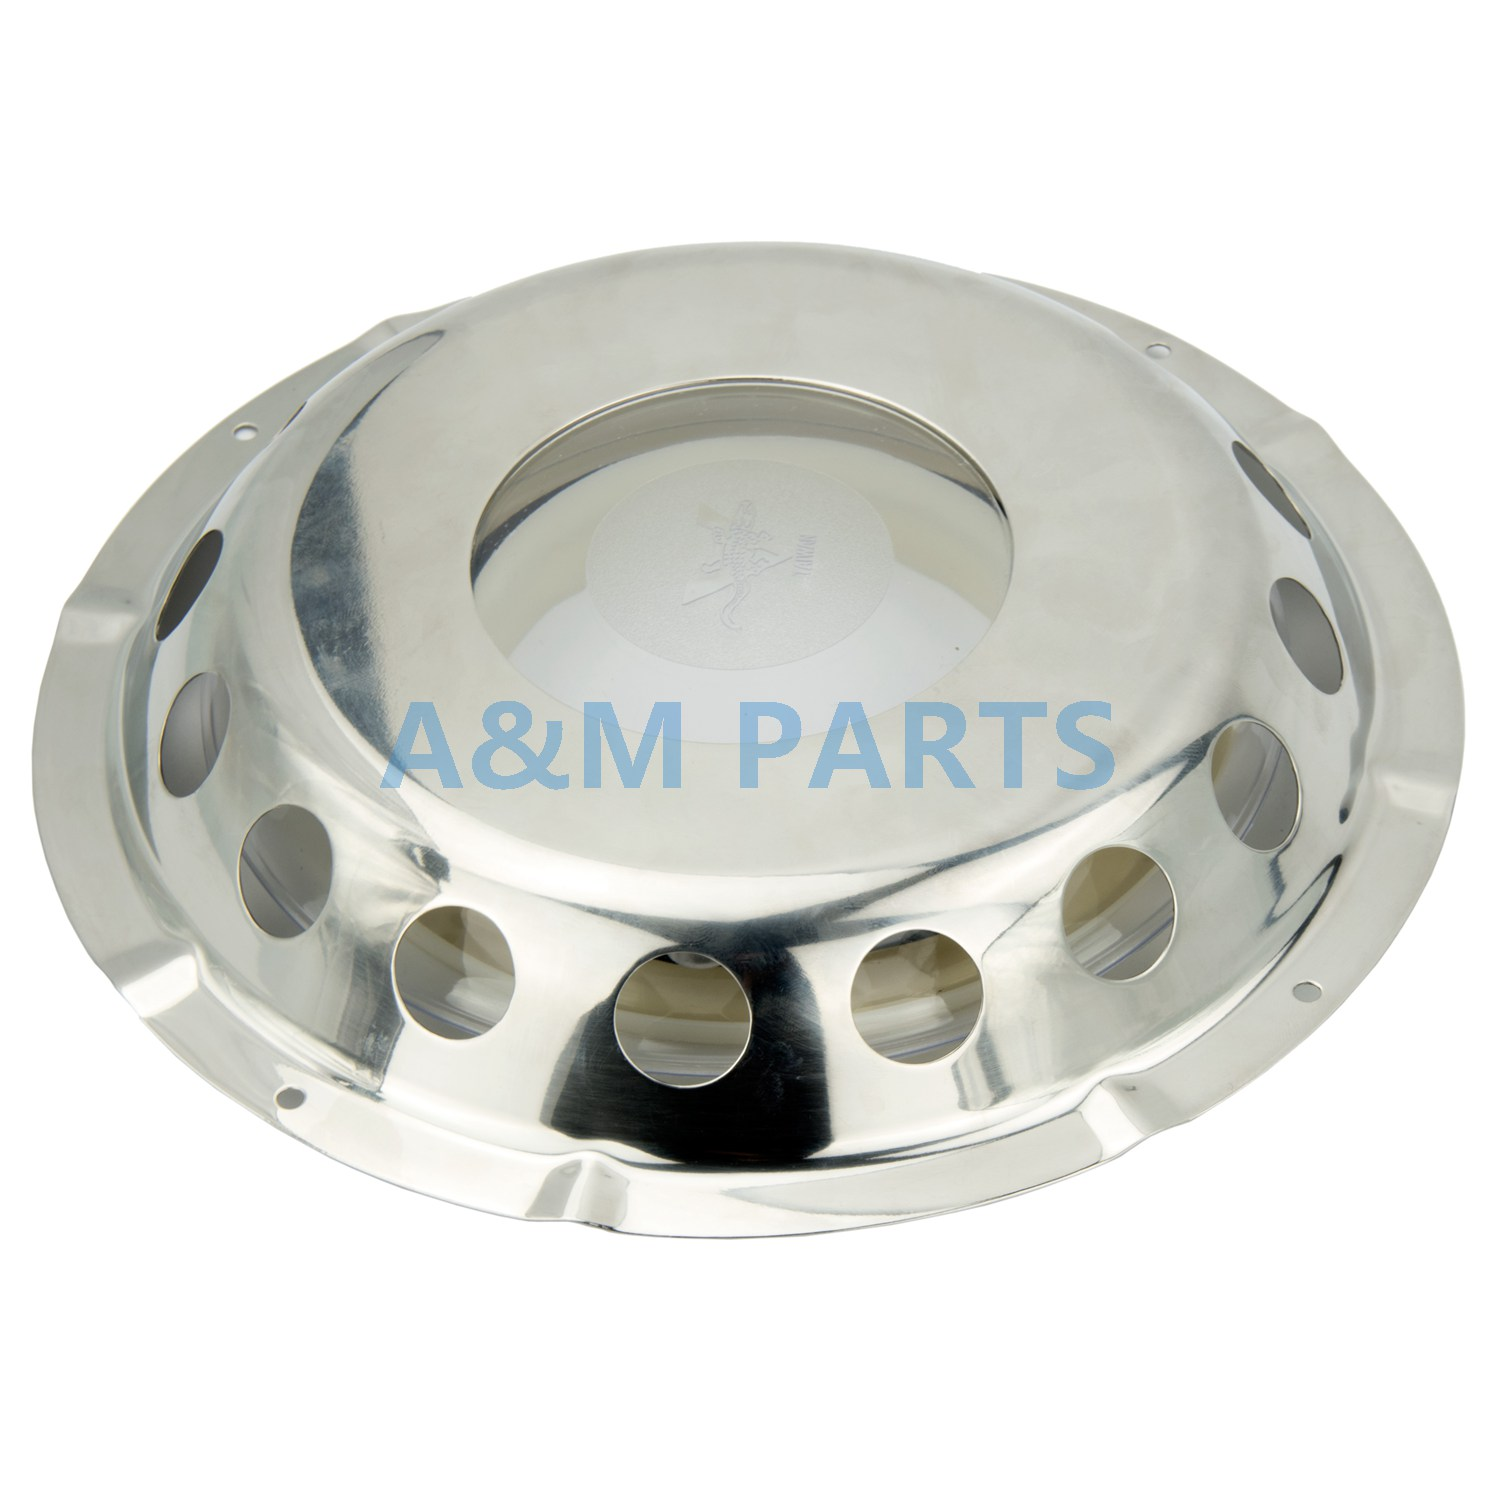 Marine Stainless Steel Deck Ventilator Cover Boat Yacht Dome Vent Cover Caravan Exhaust Fan Cover